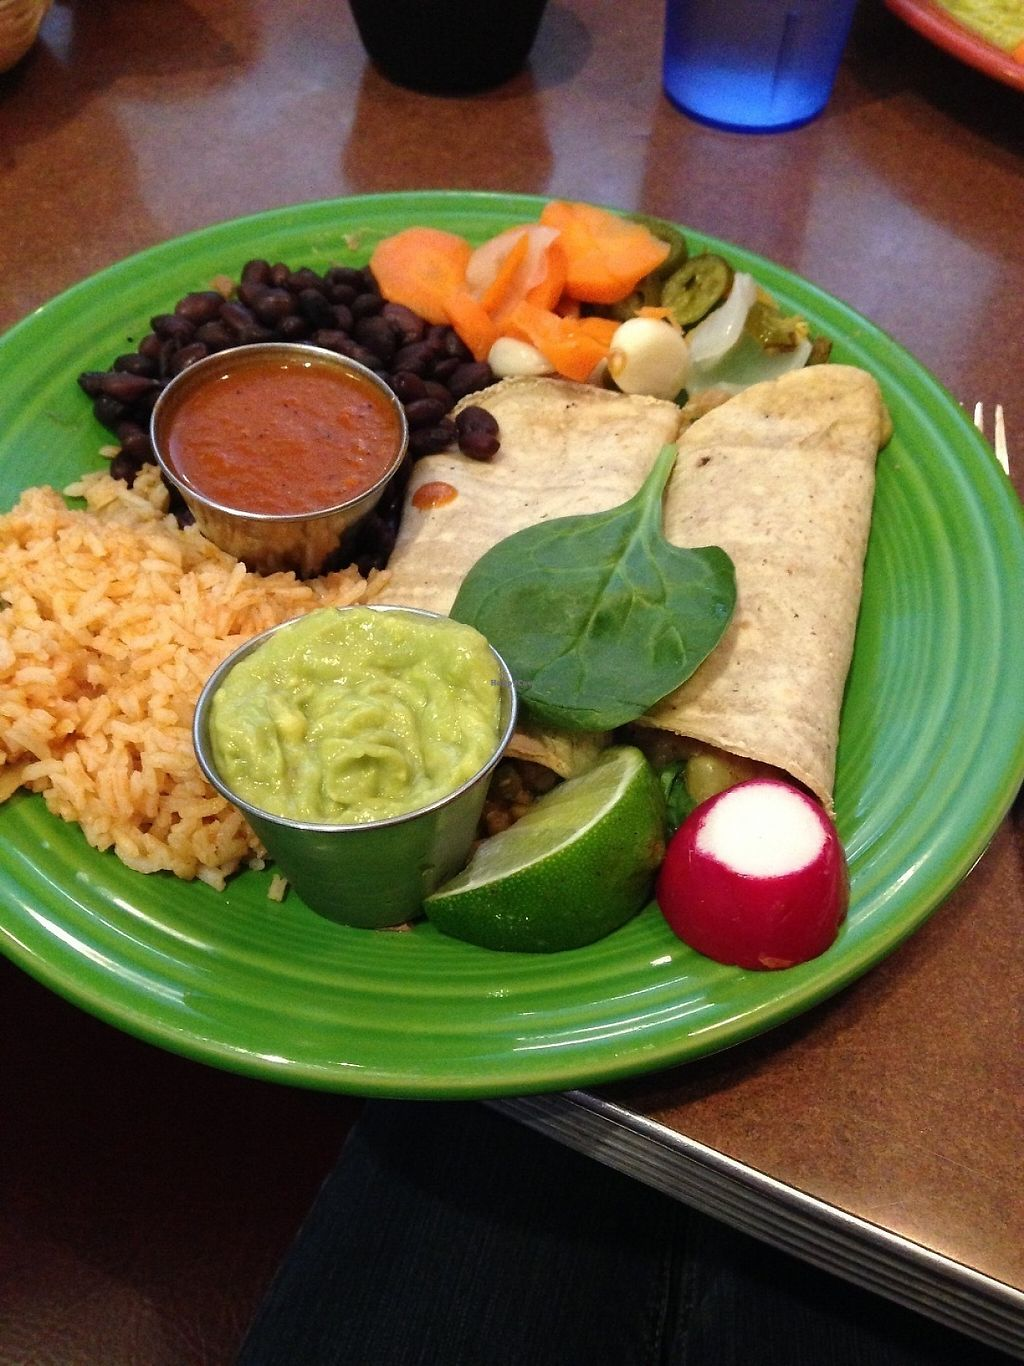 "Photo of Viva Taqueria and Cantina  by <a href=""/members/profile/brooke____bear"">brooke____bear</a> <br/>Vegan enchiladas with the sauce on the side  <br/> May 6, 2017  - <a href='/contact/abuse/image/29363/256033'>Report</a>"